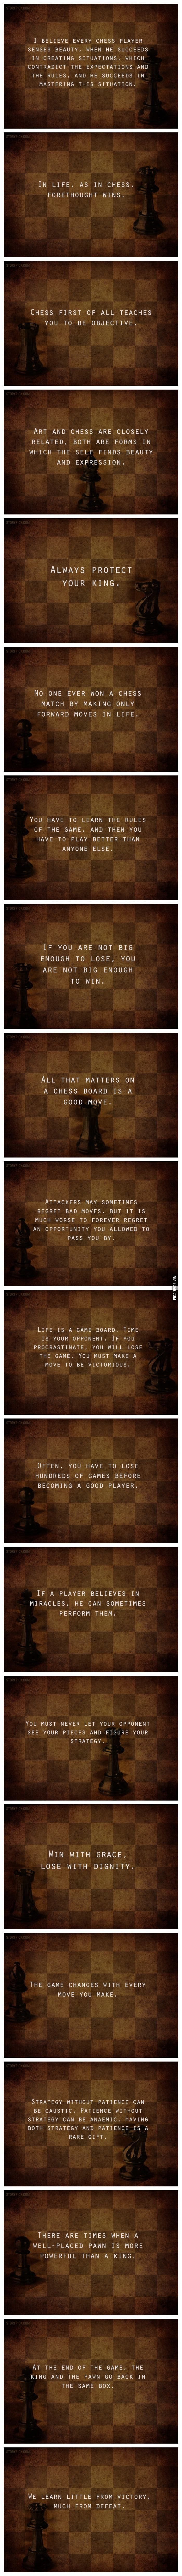 Interesting facts chess can teach you - 9GAG